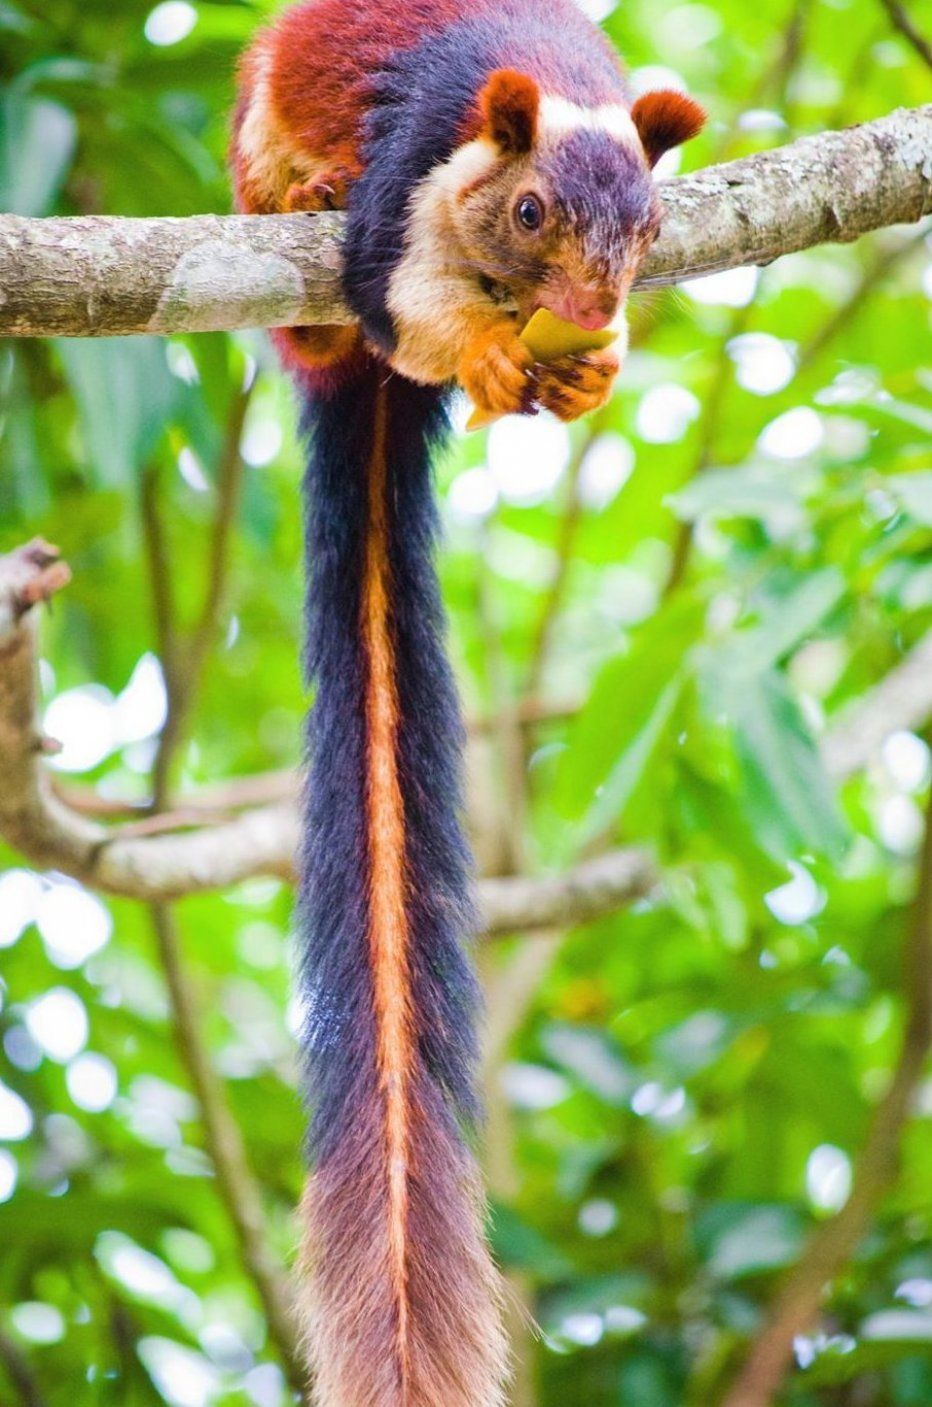 India is home to a colorful and large squirrel species